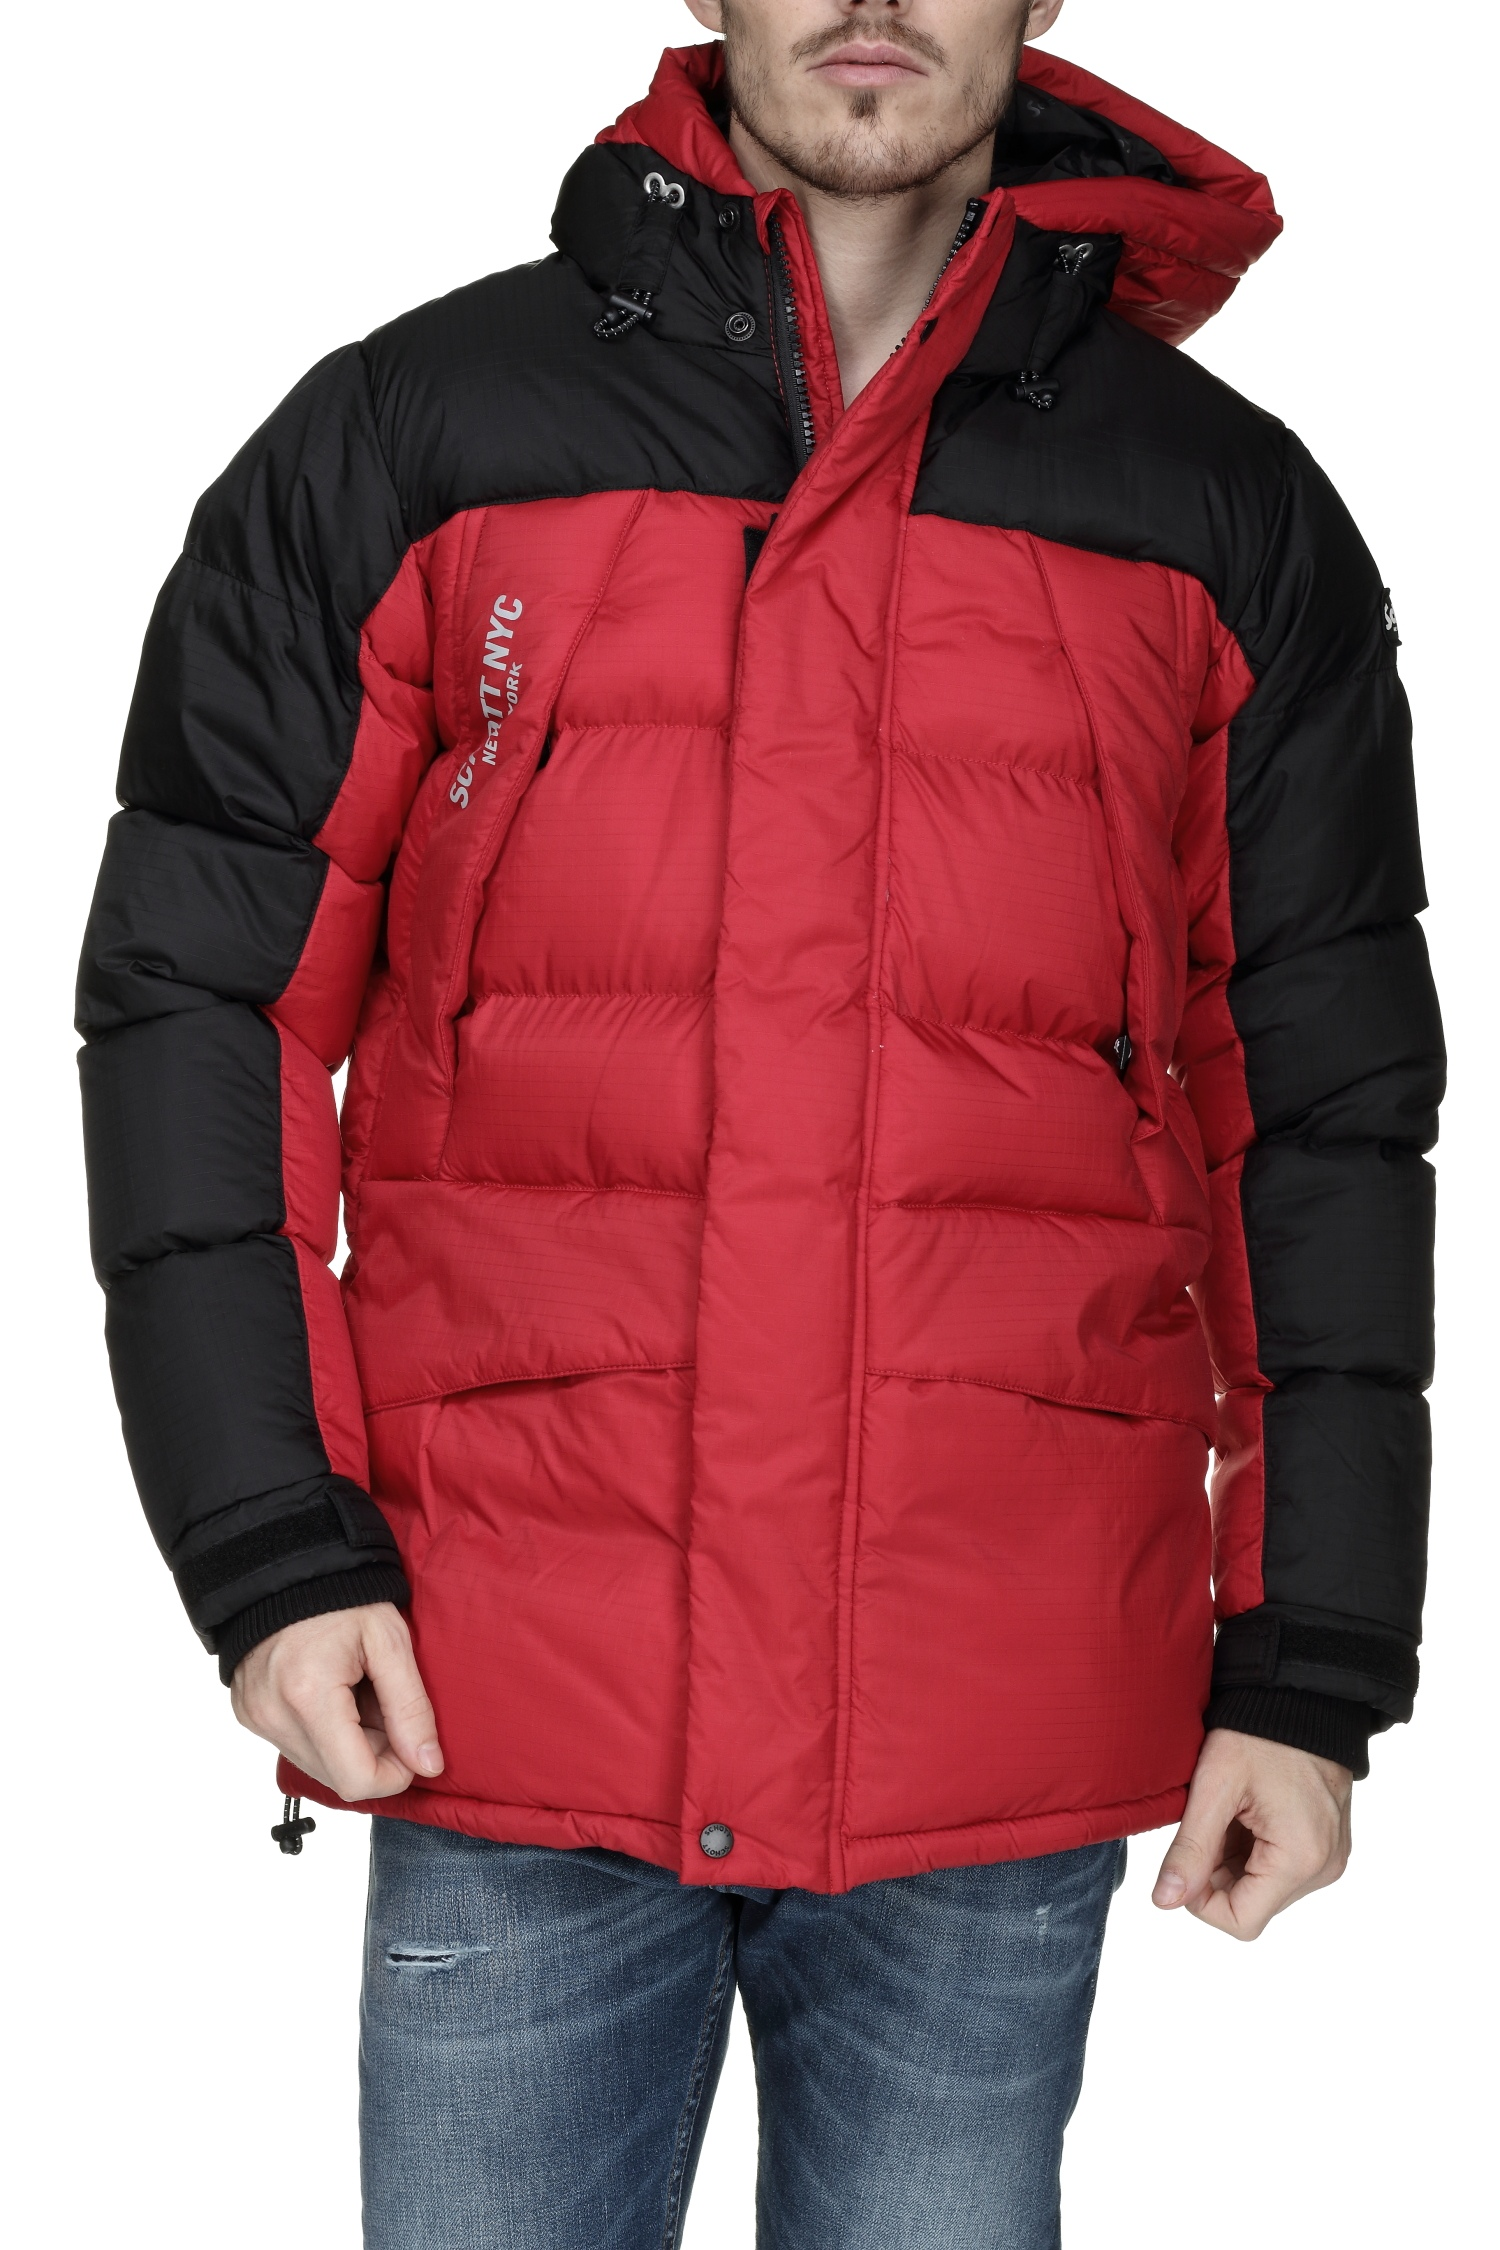 http://www.leadermode.com/181858/schott-bear19-red-black.jpg